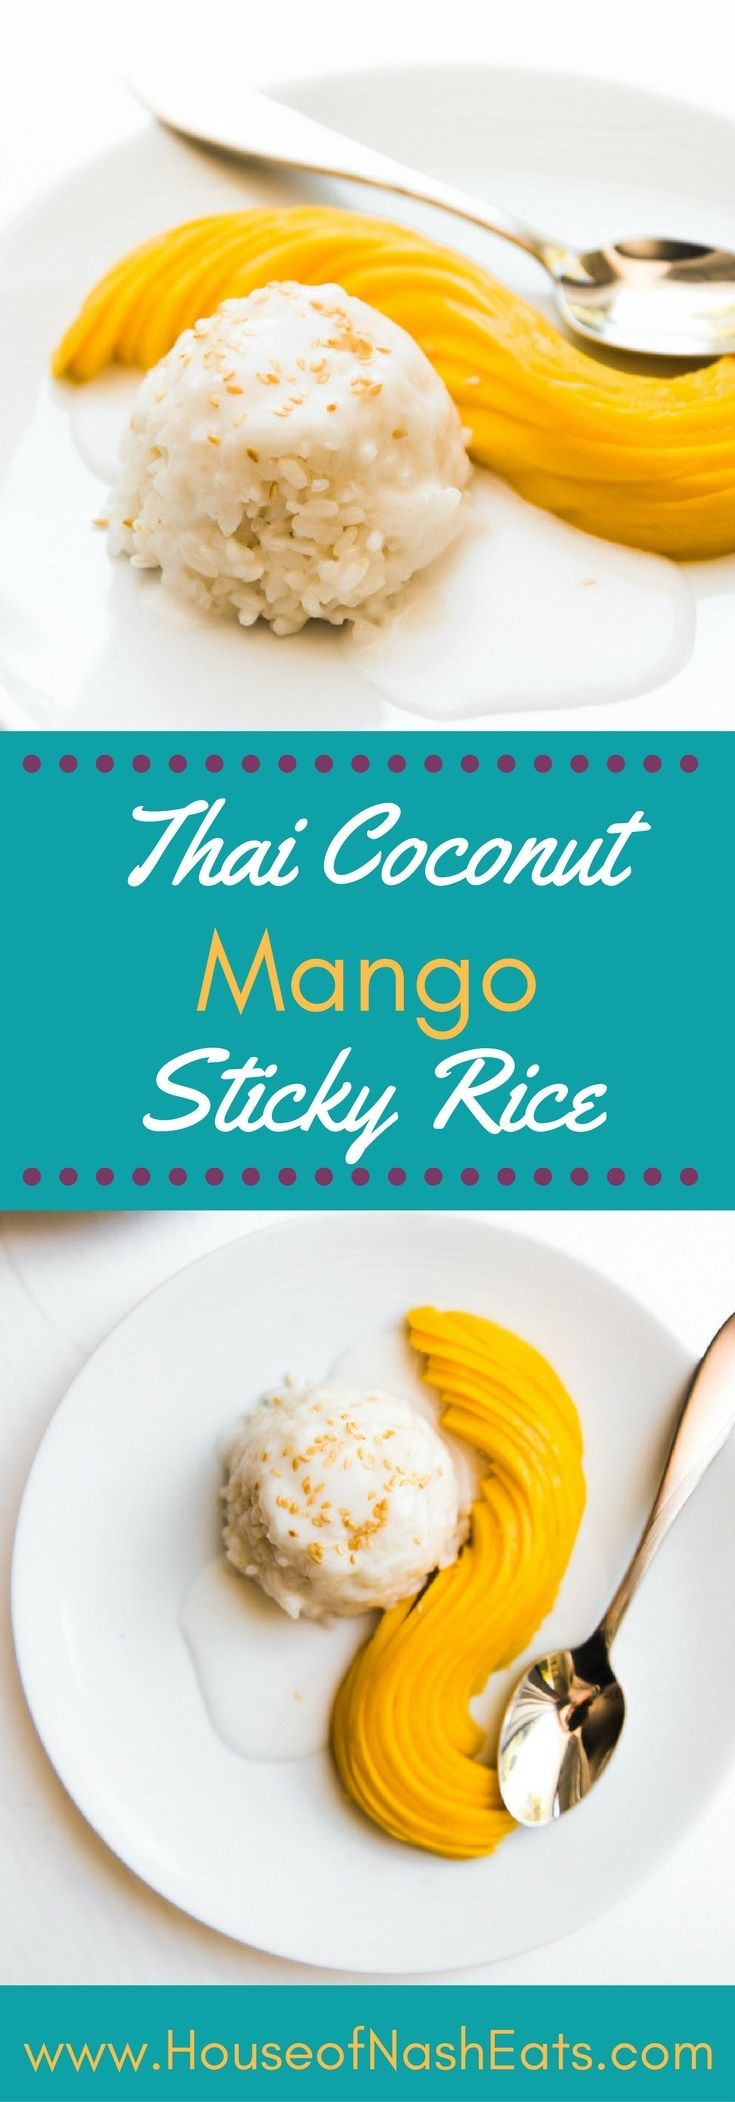 1172 best Thai Recipes images on Pinterest | Cooking food, Thai food ...